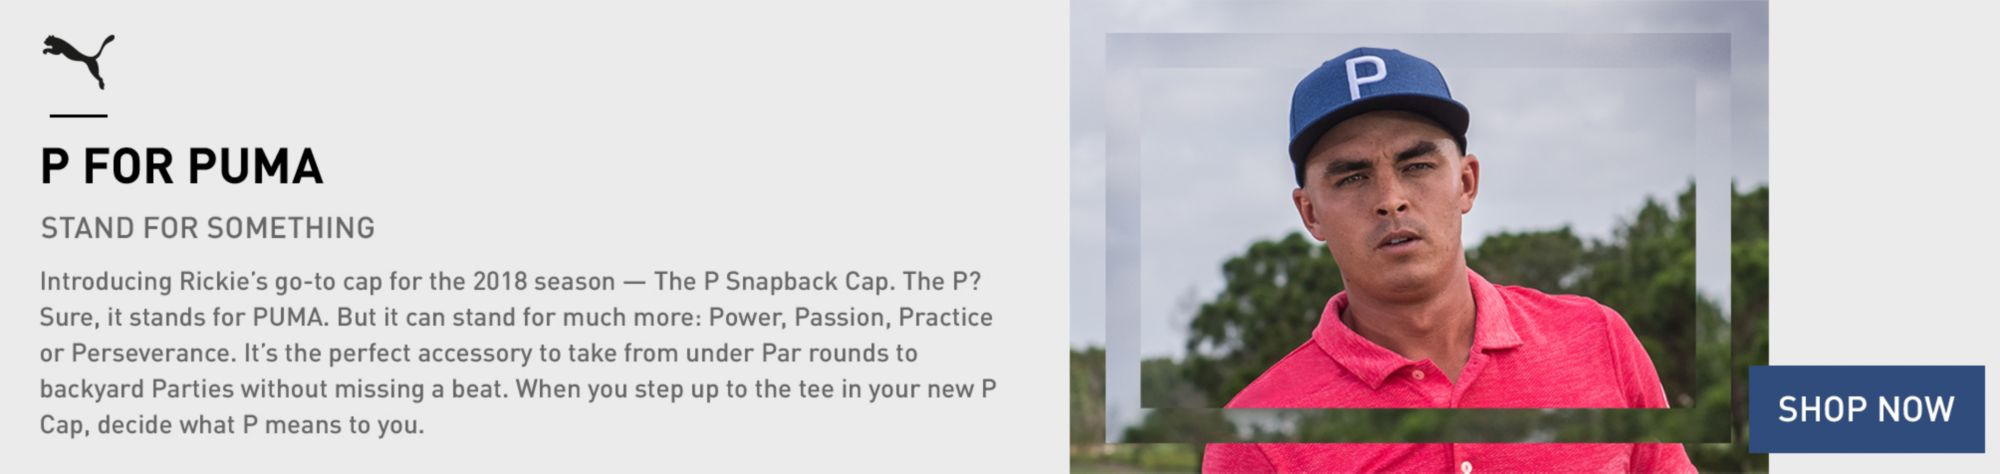 P For Puma - Stand For Something - Introducing Rickie's go-to cap for the 2018 season. The P Snapback Cap. The P? Sure, it stands for PUMA. But it can stand for much more. Power, Passion, Practice at Perseverance. It's the perfect accessory to take from under Par rounds to backyard Parties without missing a beat. When you step up to the tee in your new P Cap, decide what P means to you. - Shop Now